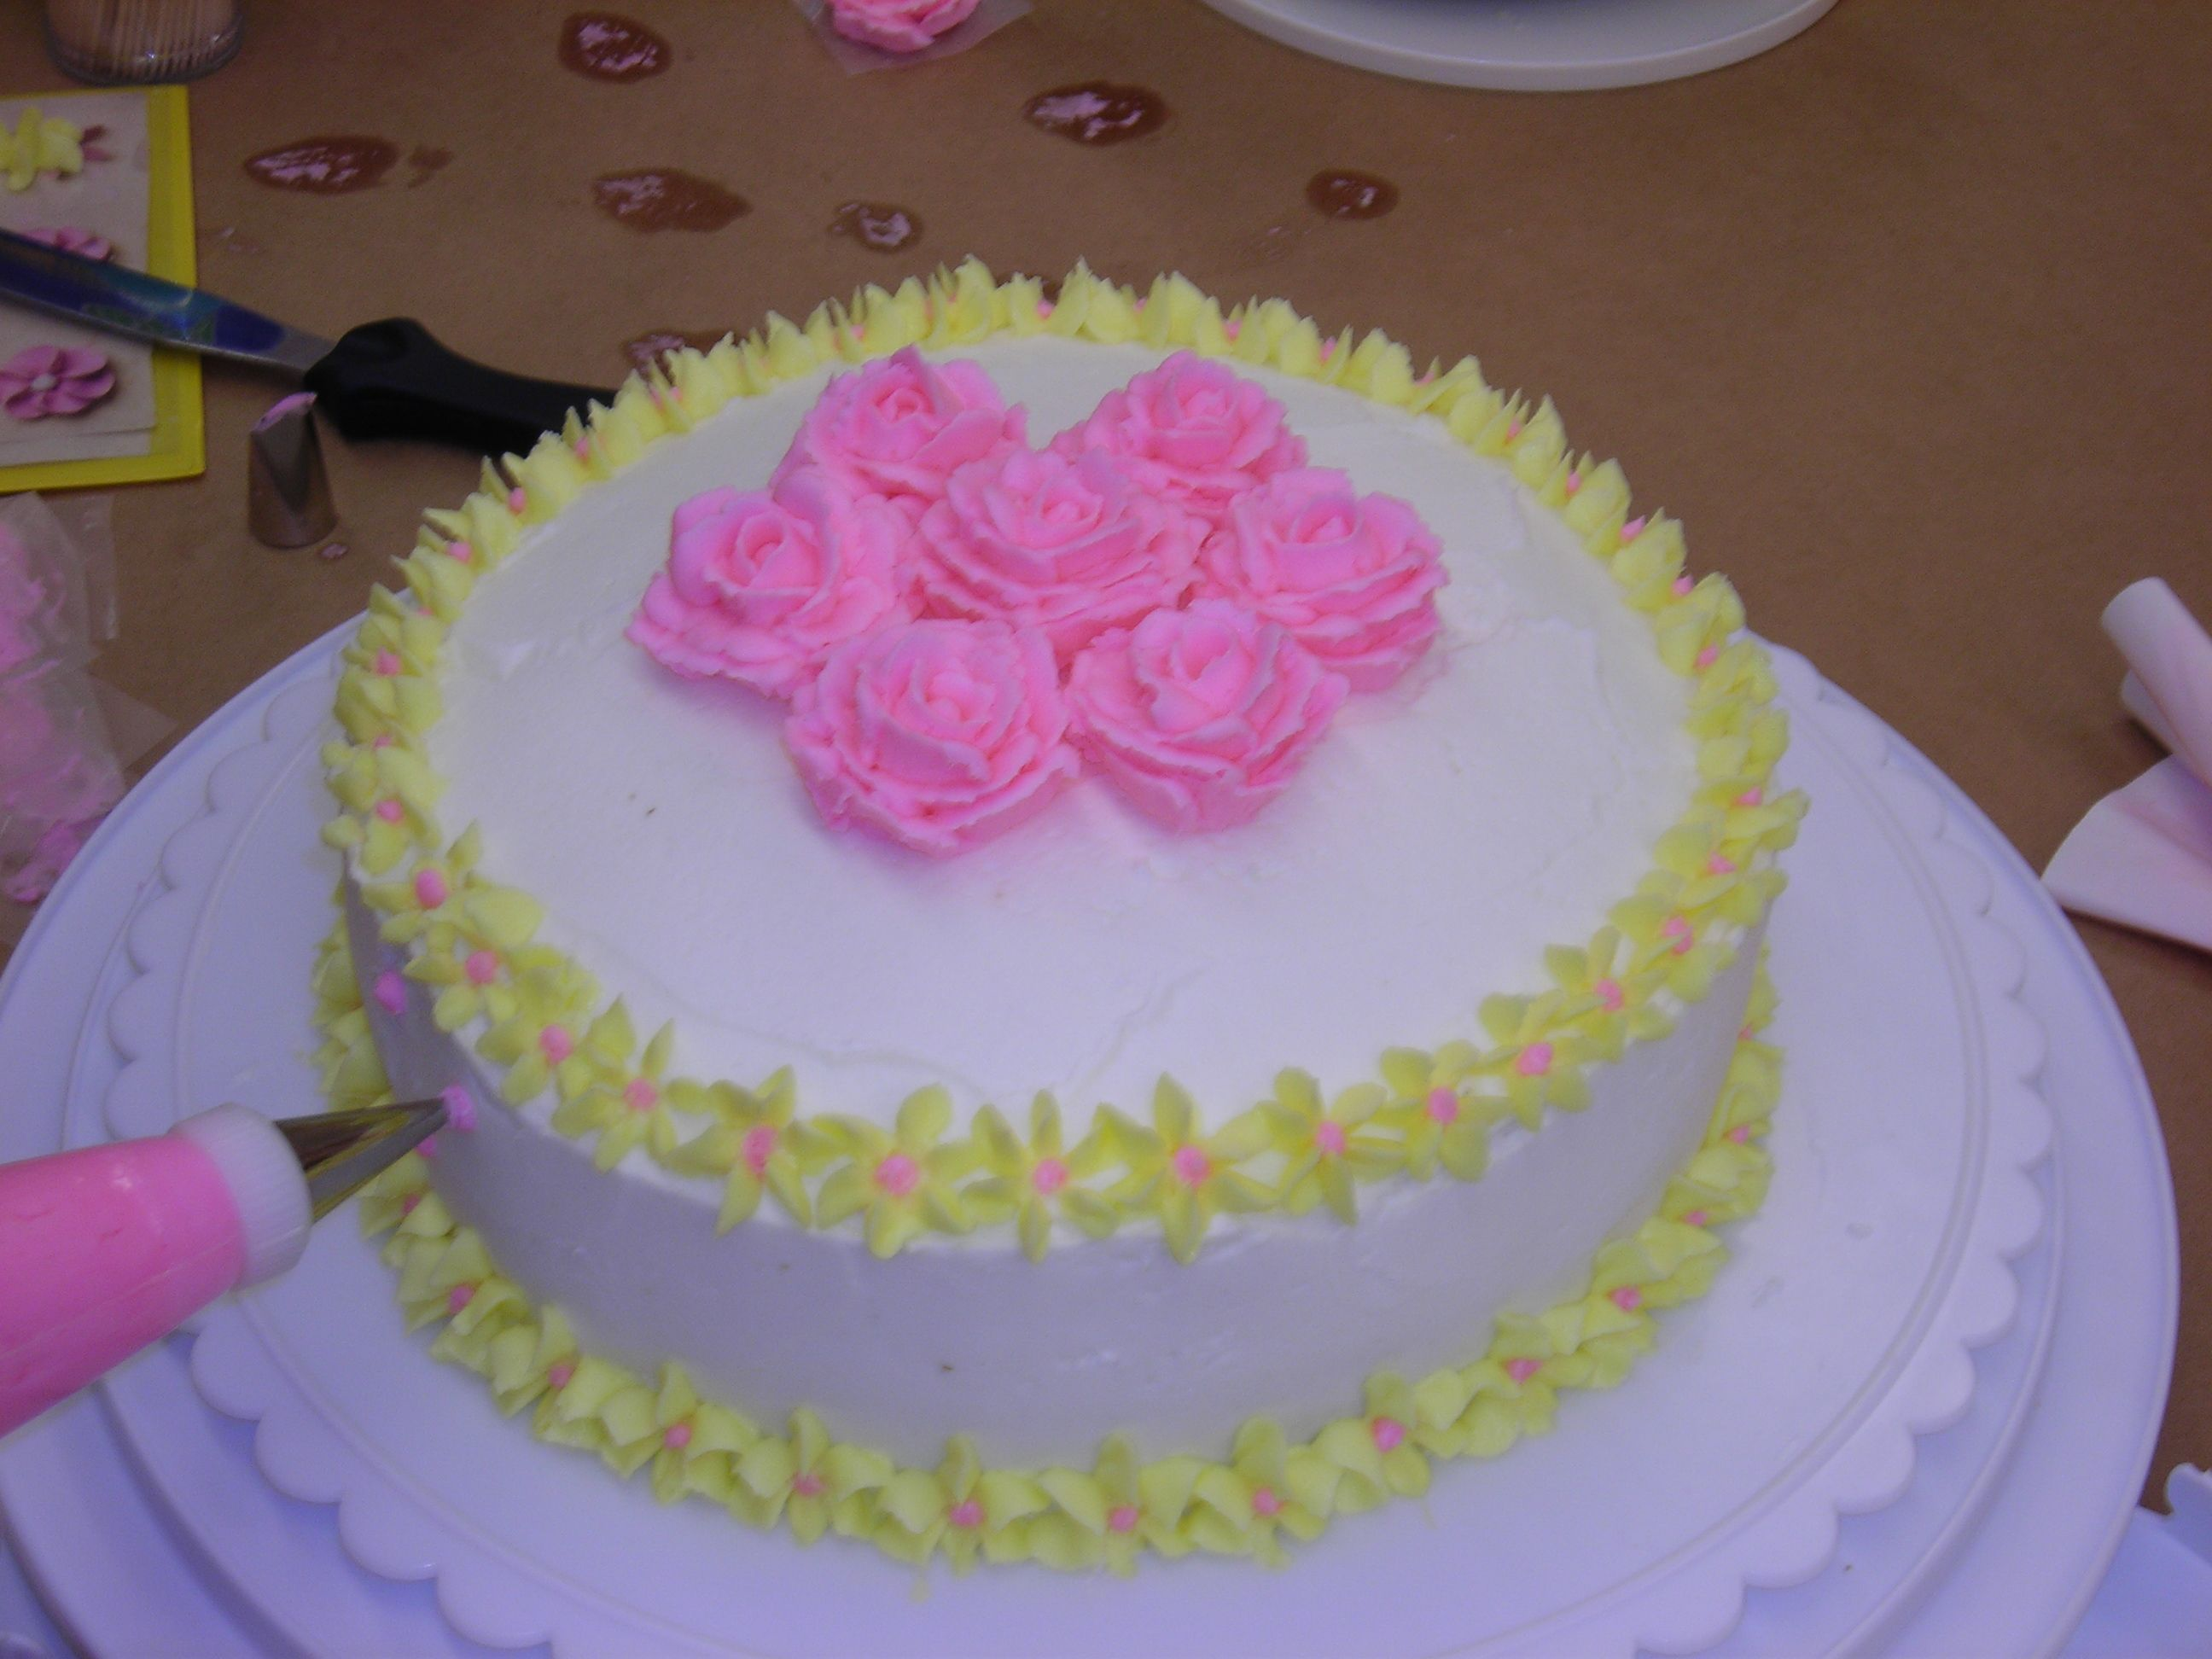 Michaels Cake Decorating Class Sign Up Amazing I Want To Perfect This Must Take Cake Decorating Classes At Design Inspiration